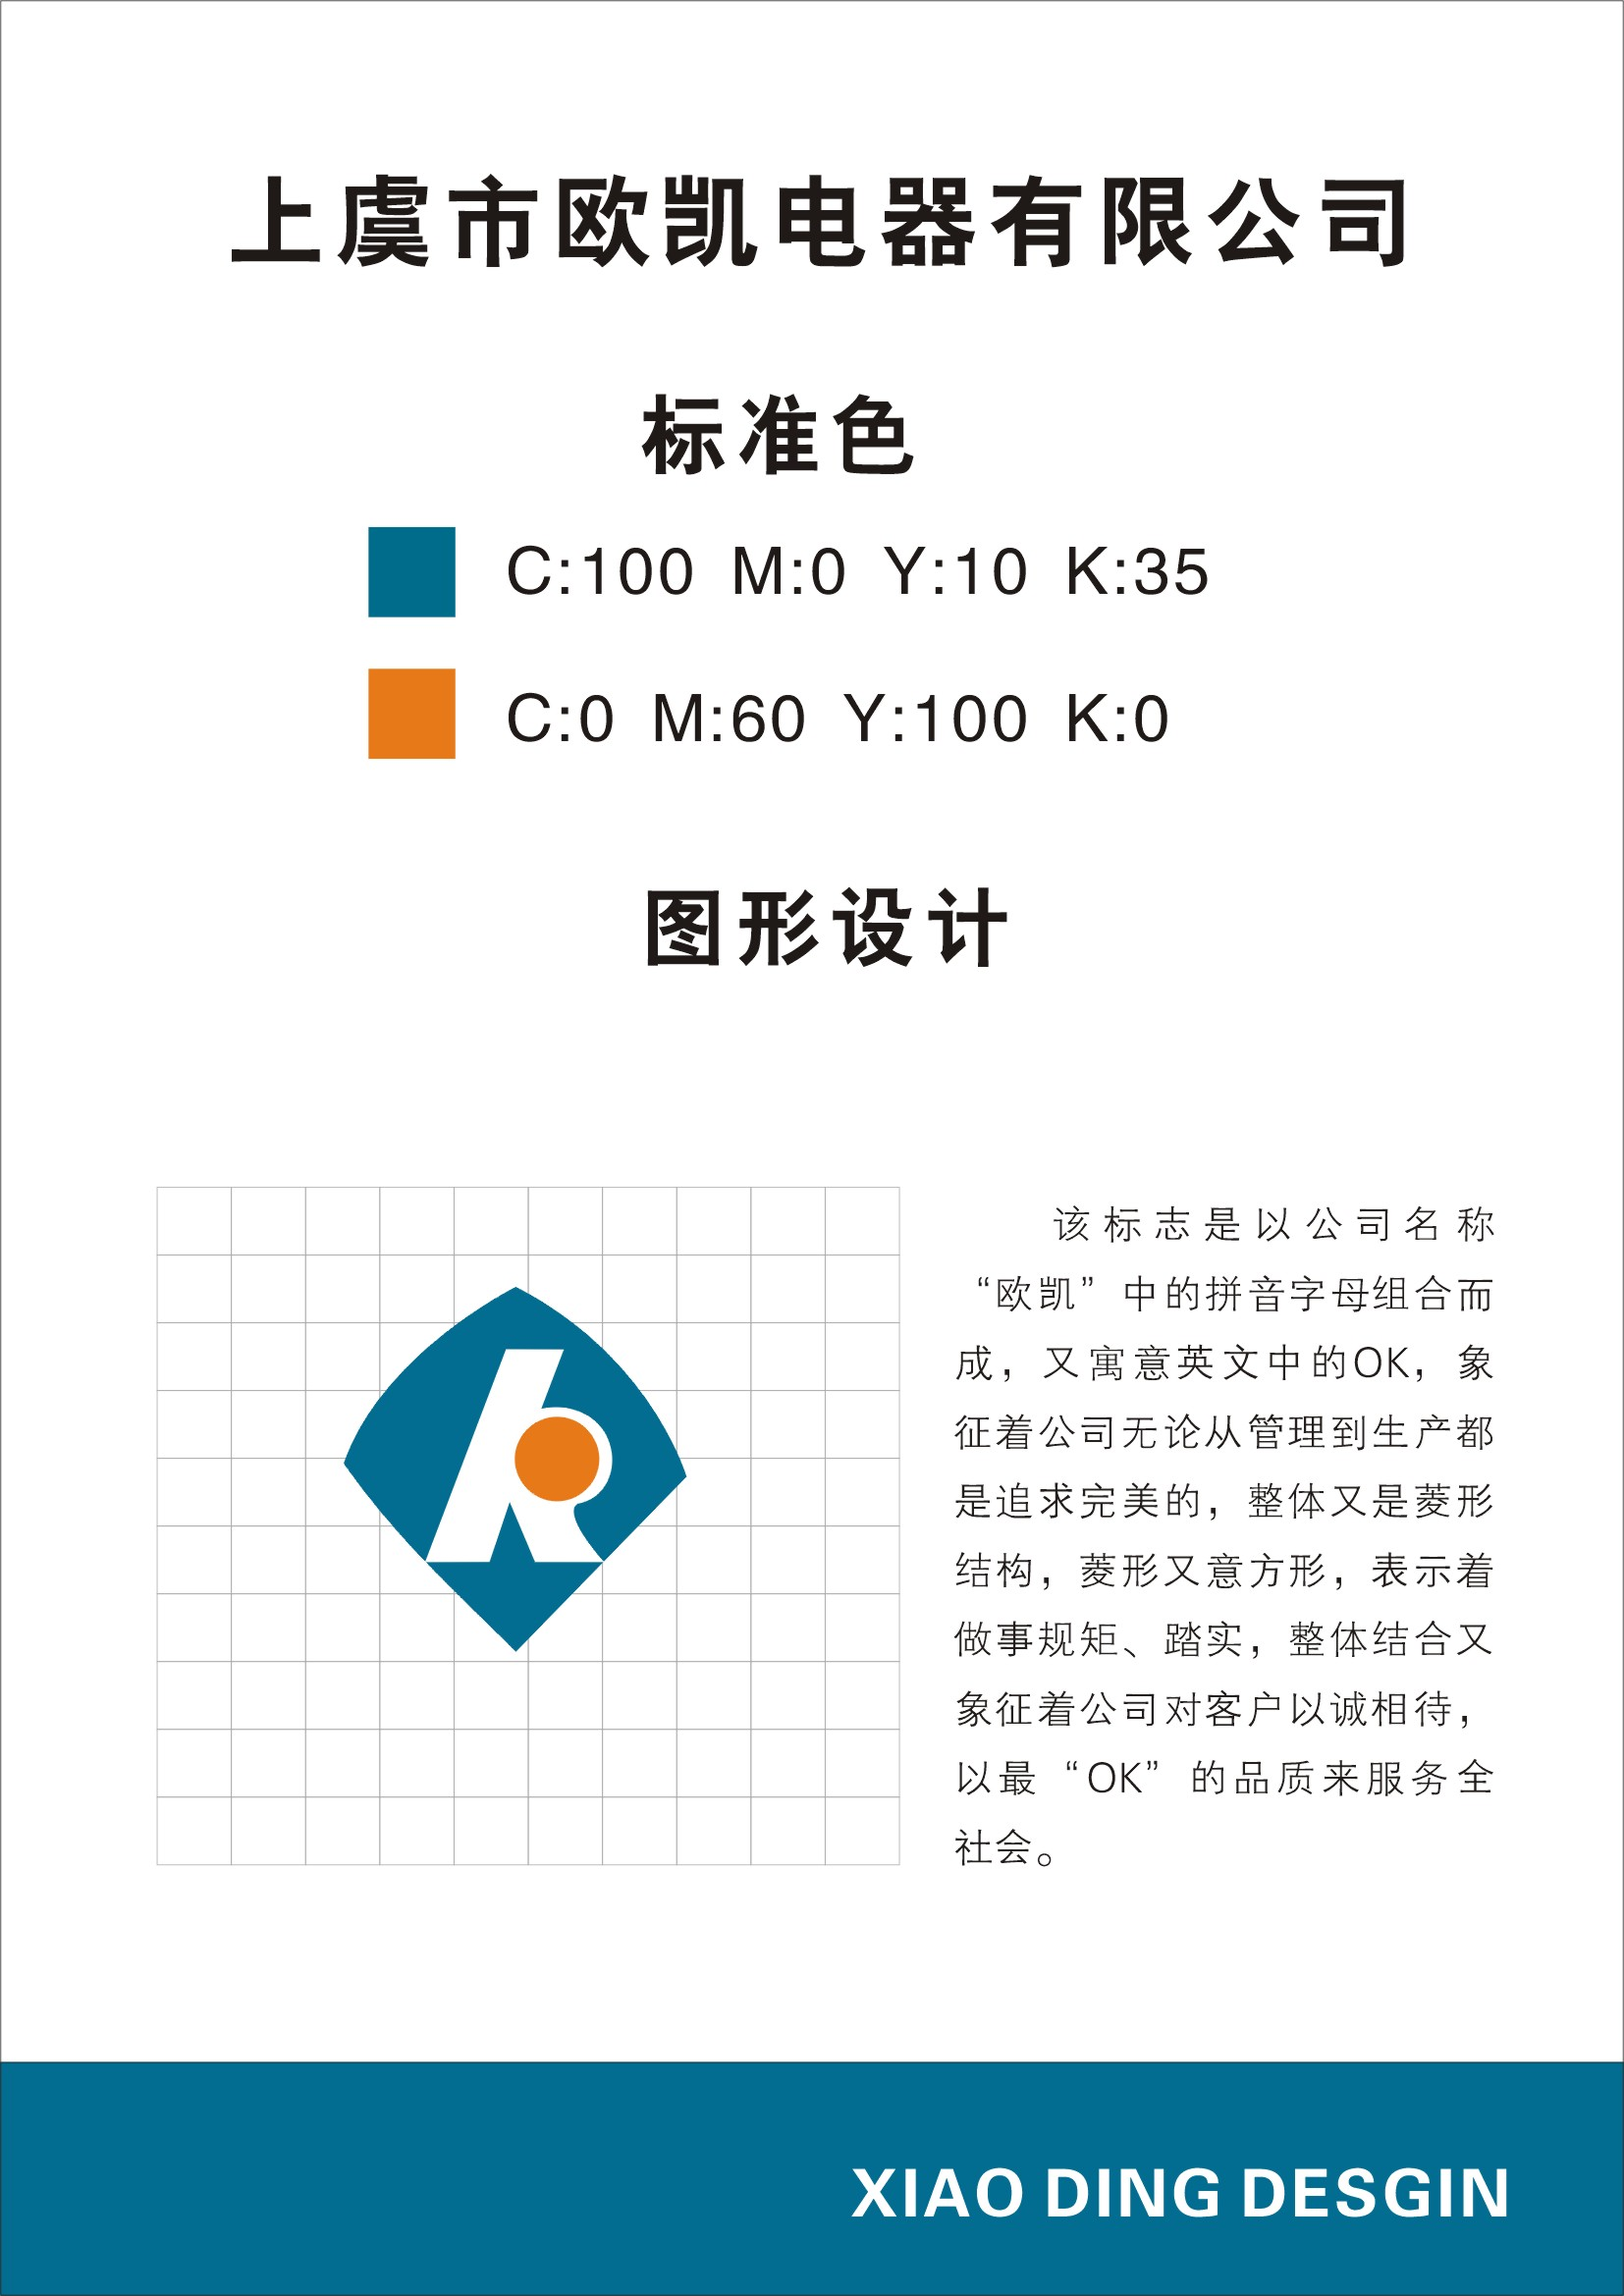 Shangyu City Oukin Electrical Appliance Co.,Ltd. Main Image